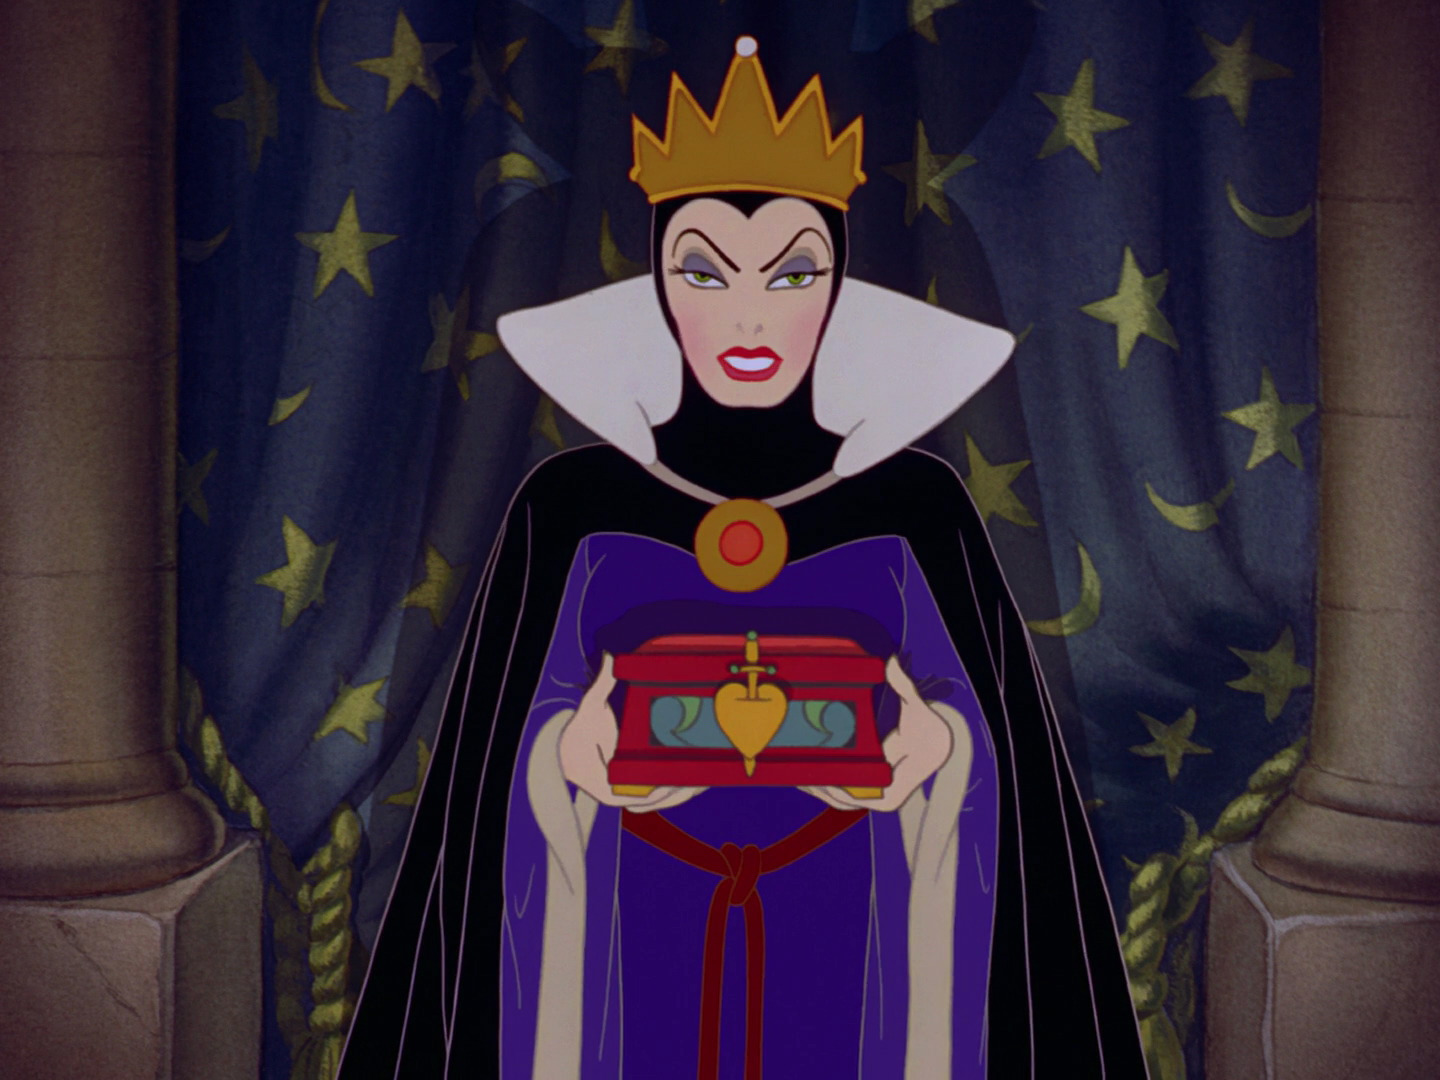 ROSELLA: Snow White and the Queen